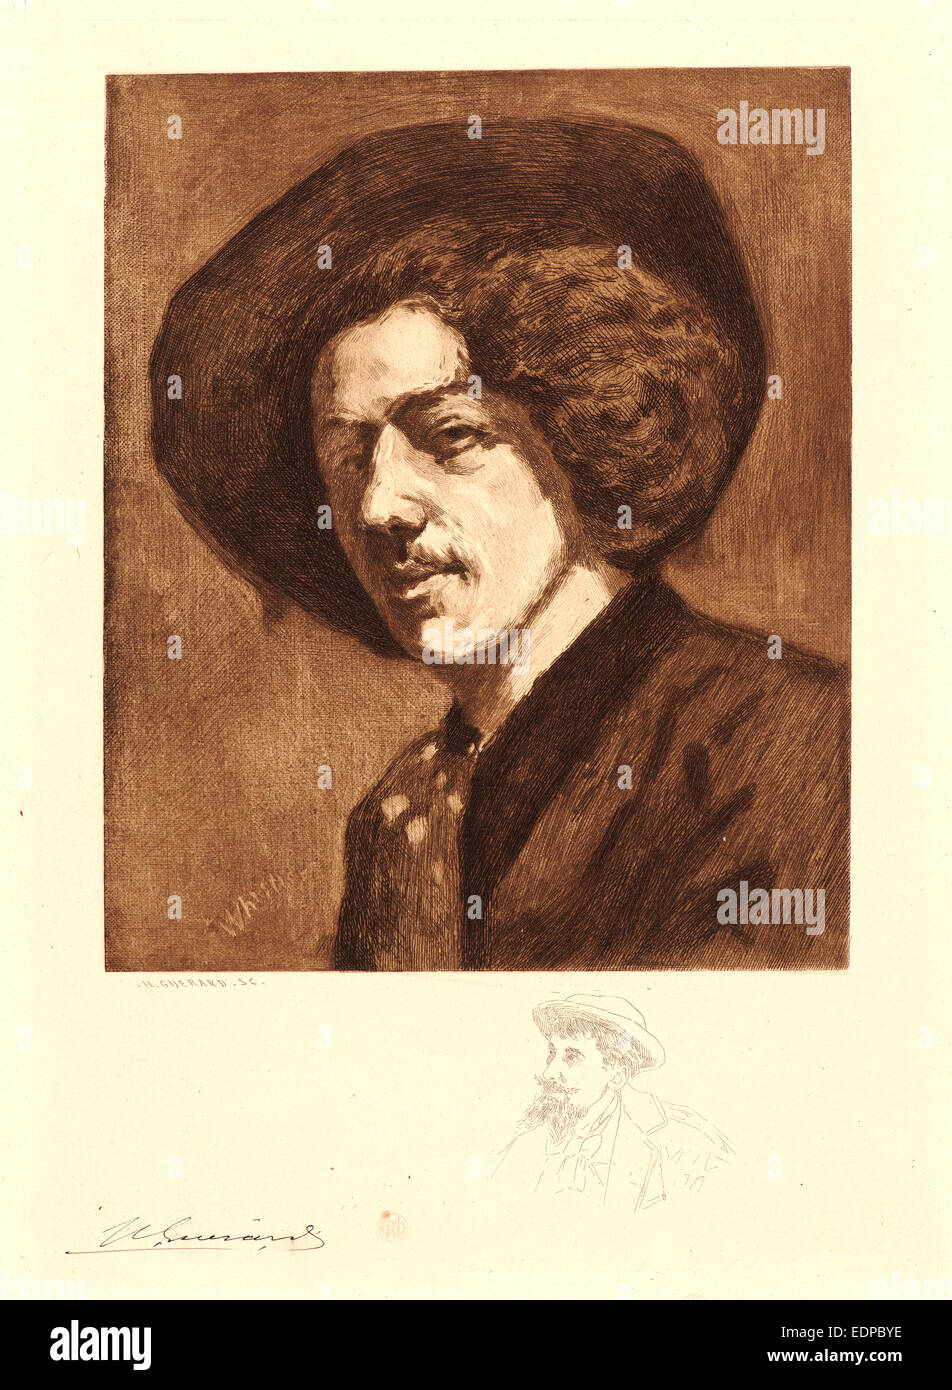 Henri Charles Guérard (French, 1846 - 1897) after James McNeill Whistler (American, 1834 - 1903). Portrait - Stock Image